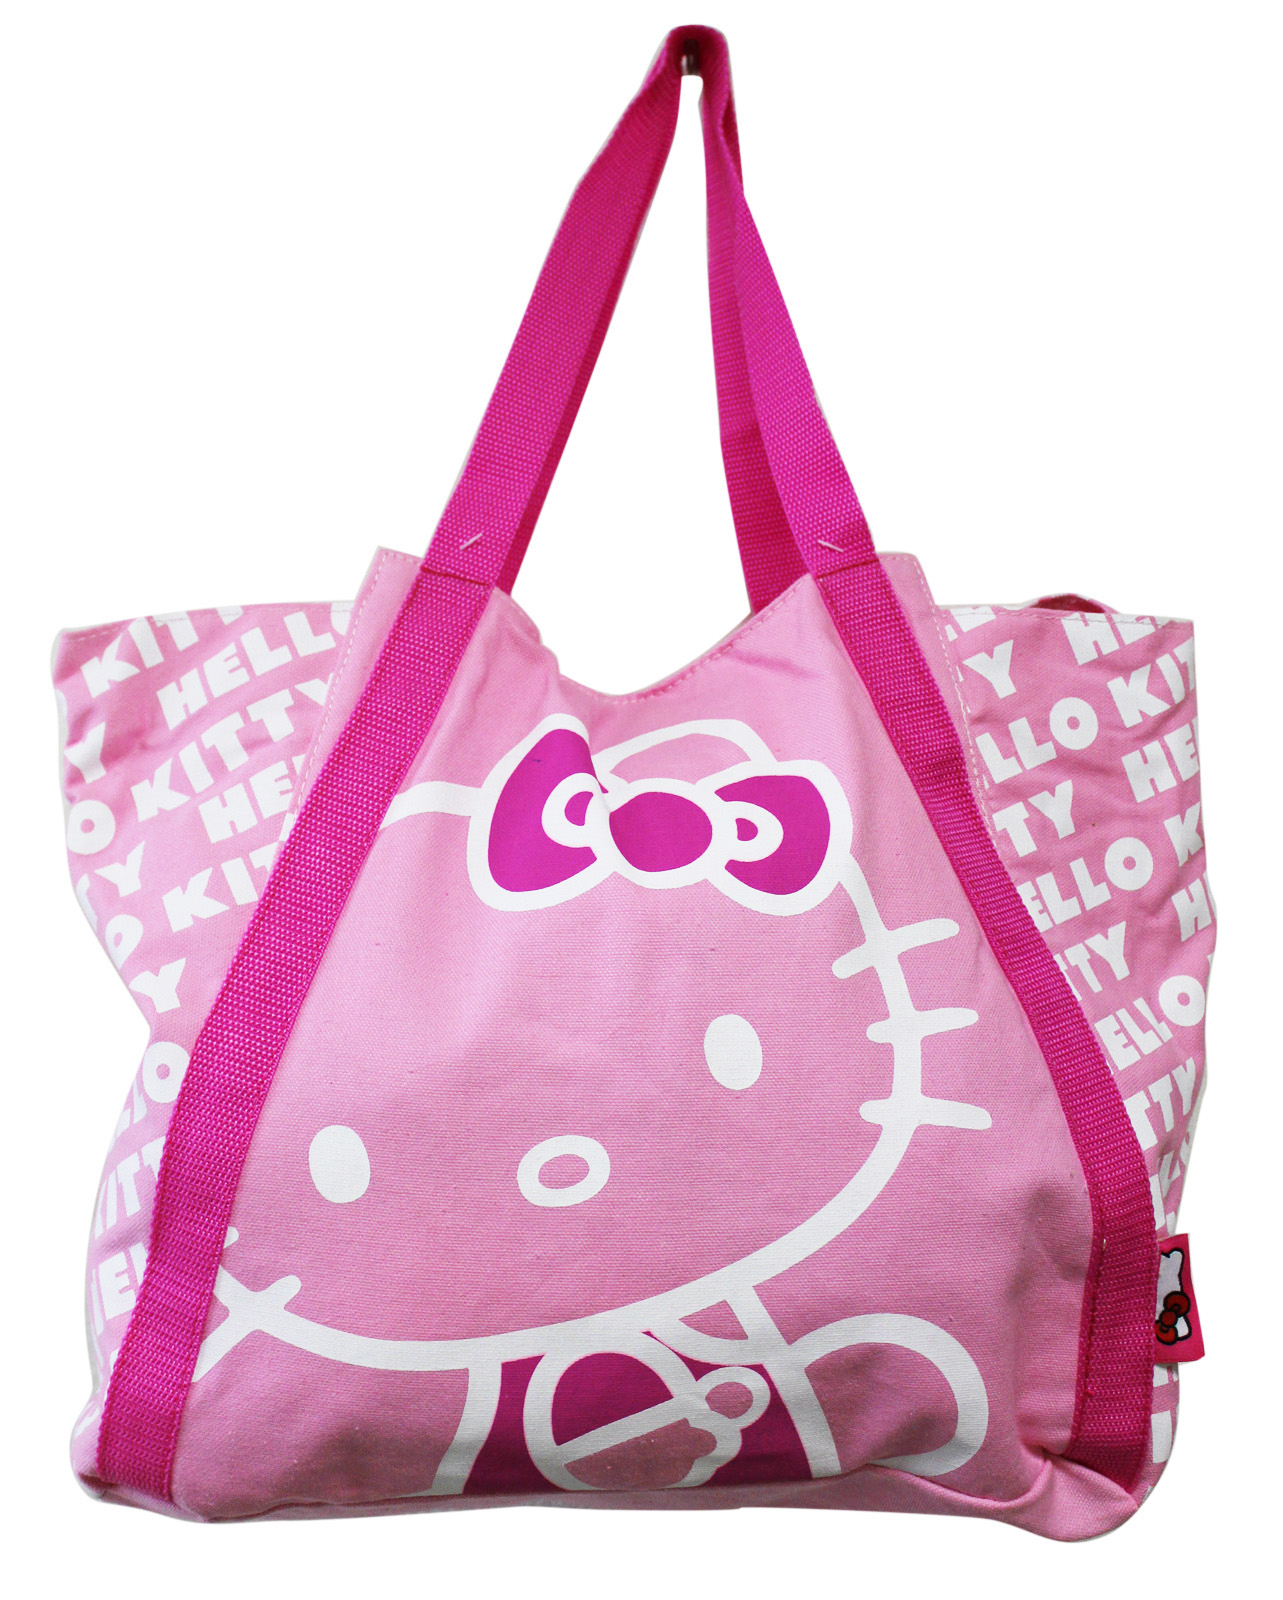 Hello Kitty Light Pink Colored Medium Size Canvas Tote Bag